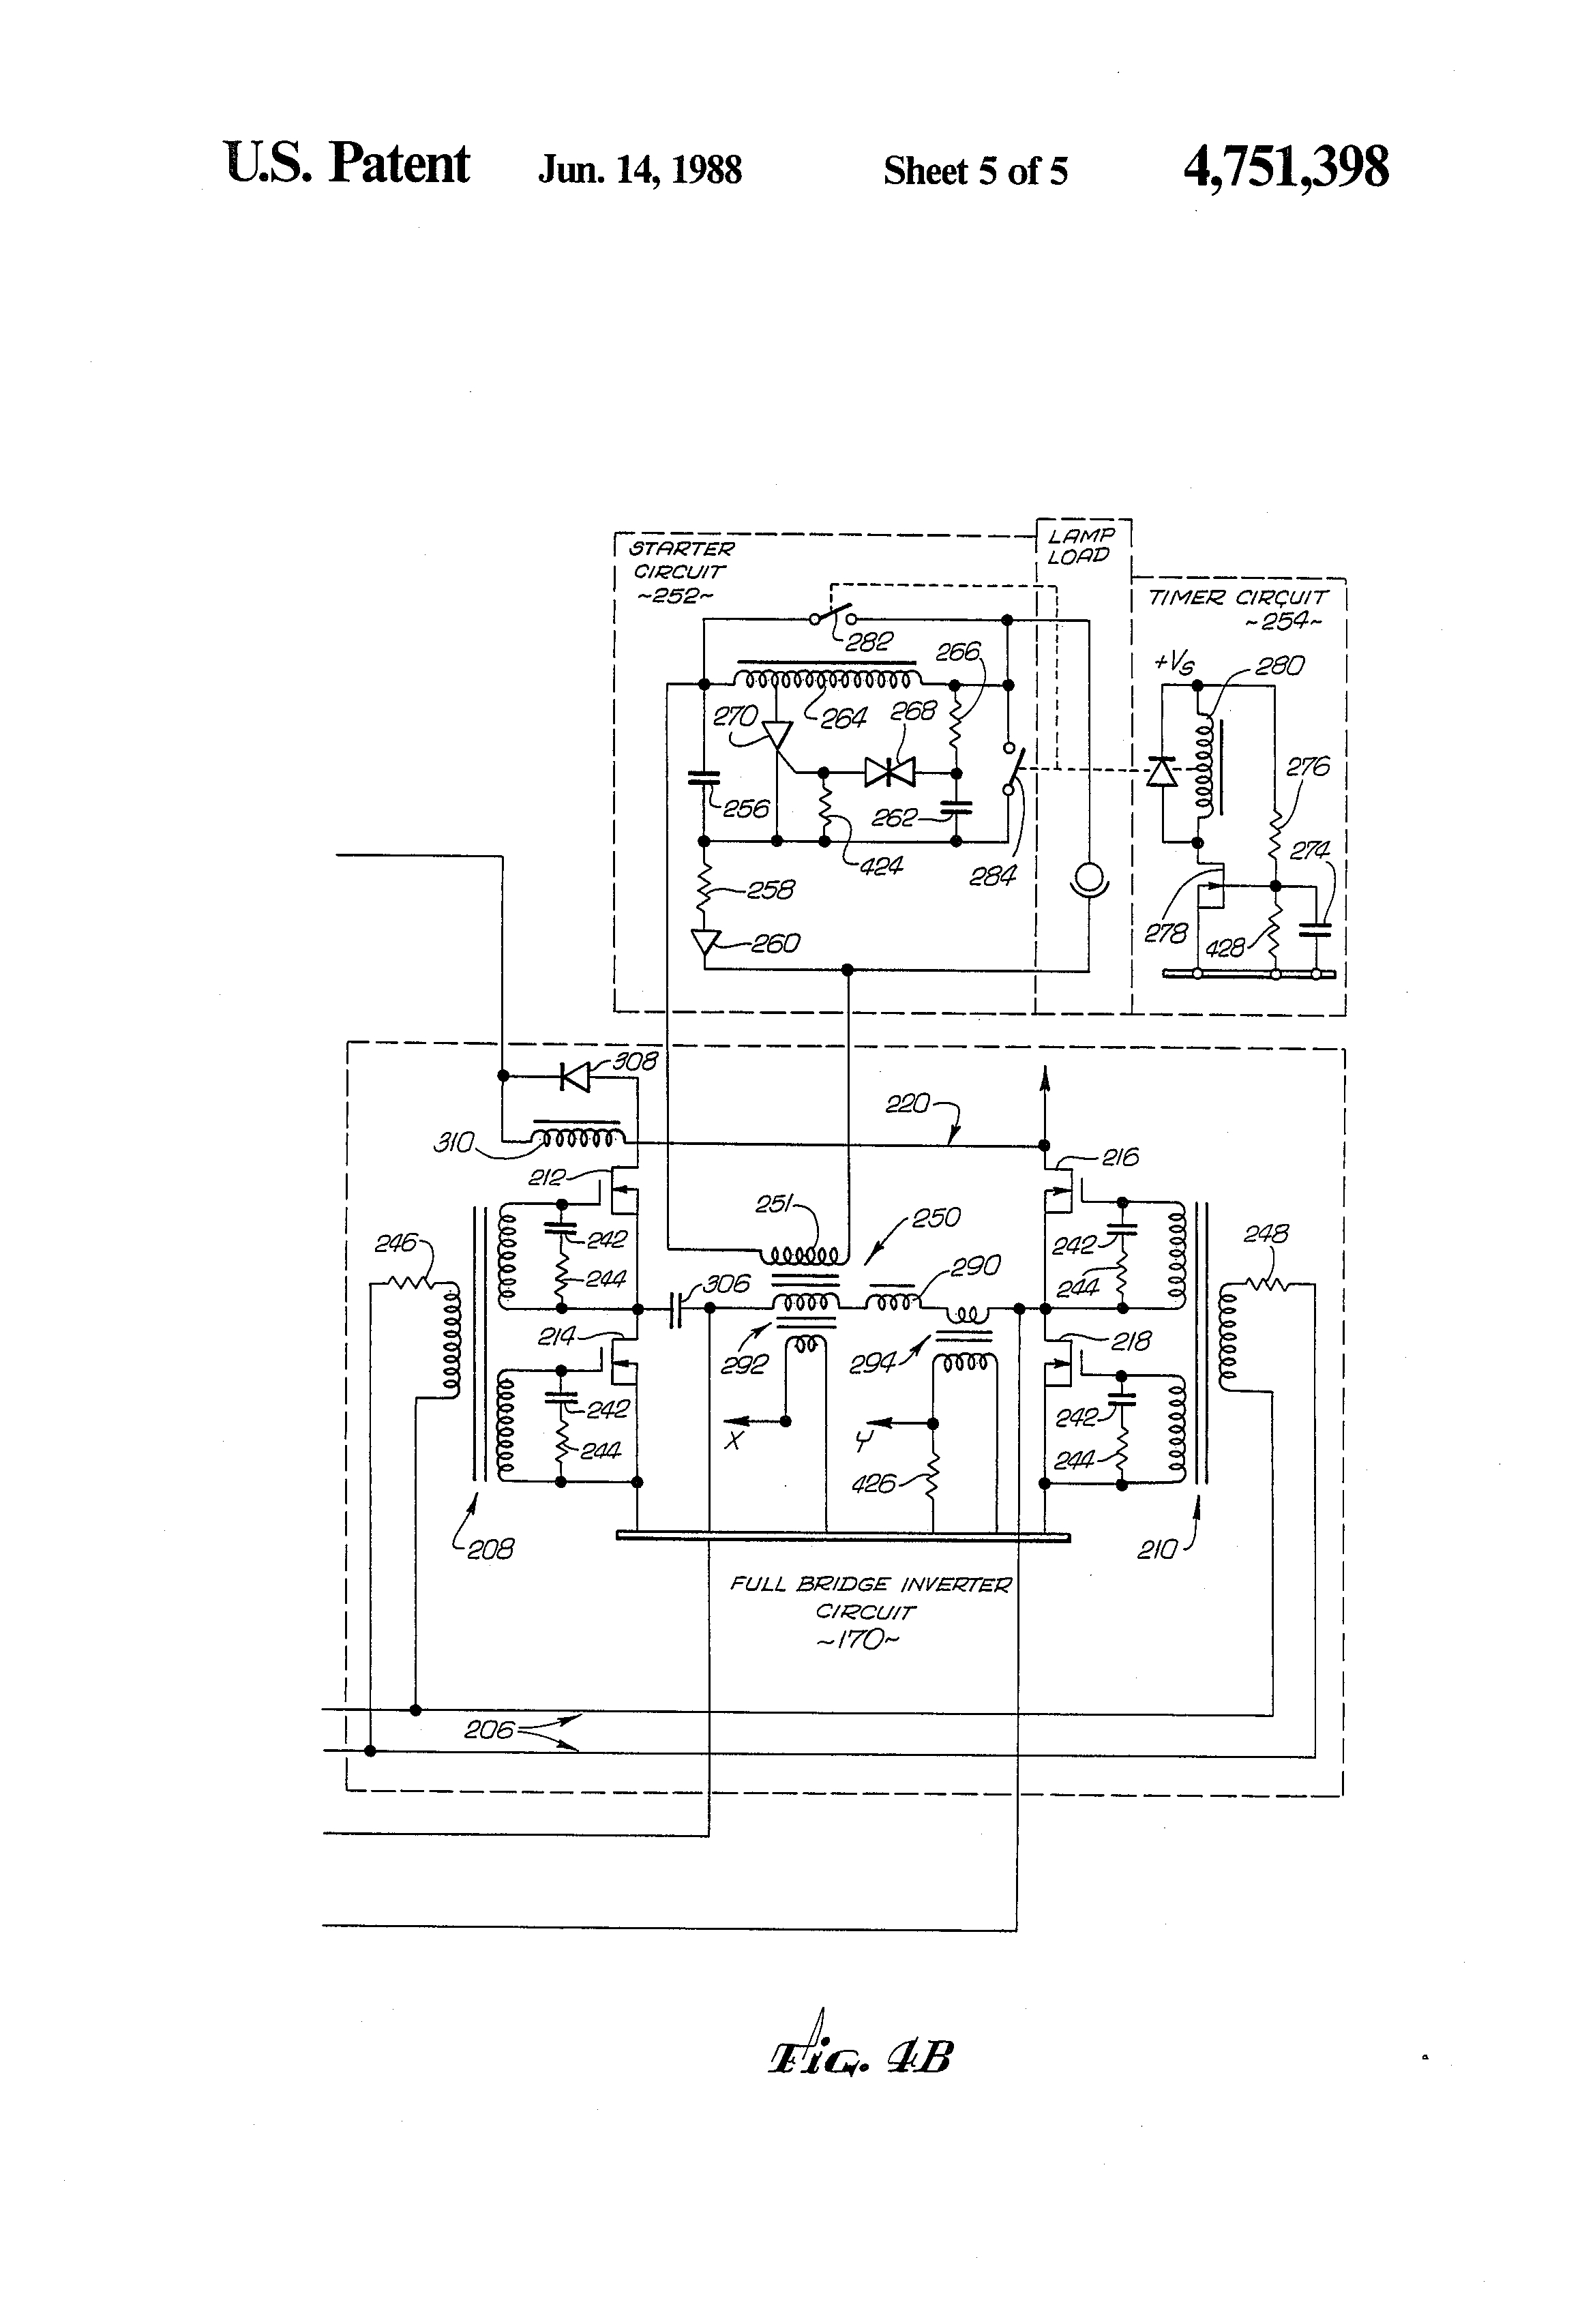 bodine b90 emergency ballast wiring diagram Download-bodine b90 emergency ballast wiring diagram Collection bodine b90 wiring diagram Best of ponent Led 7-n